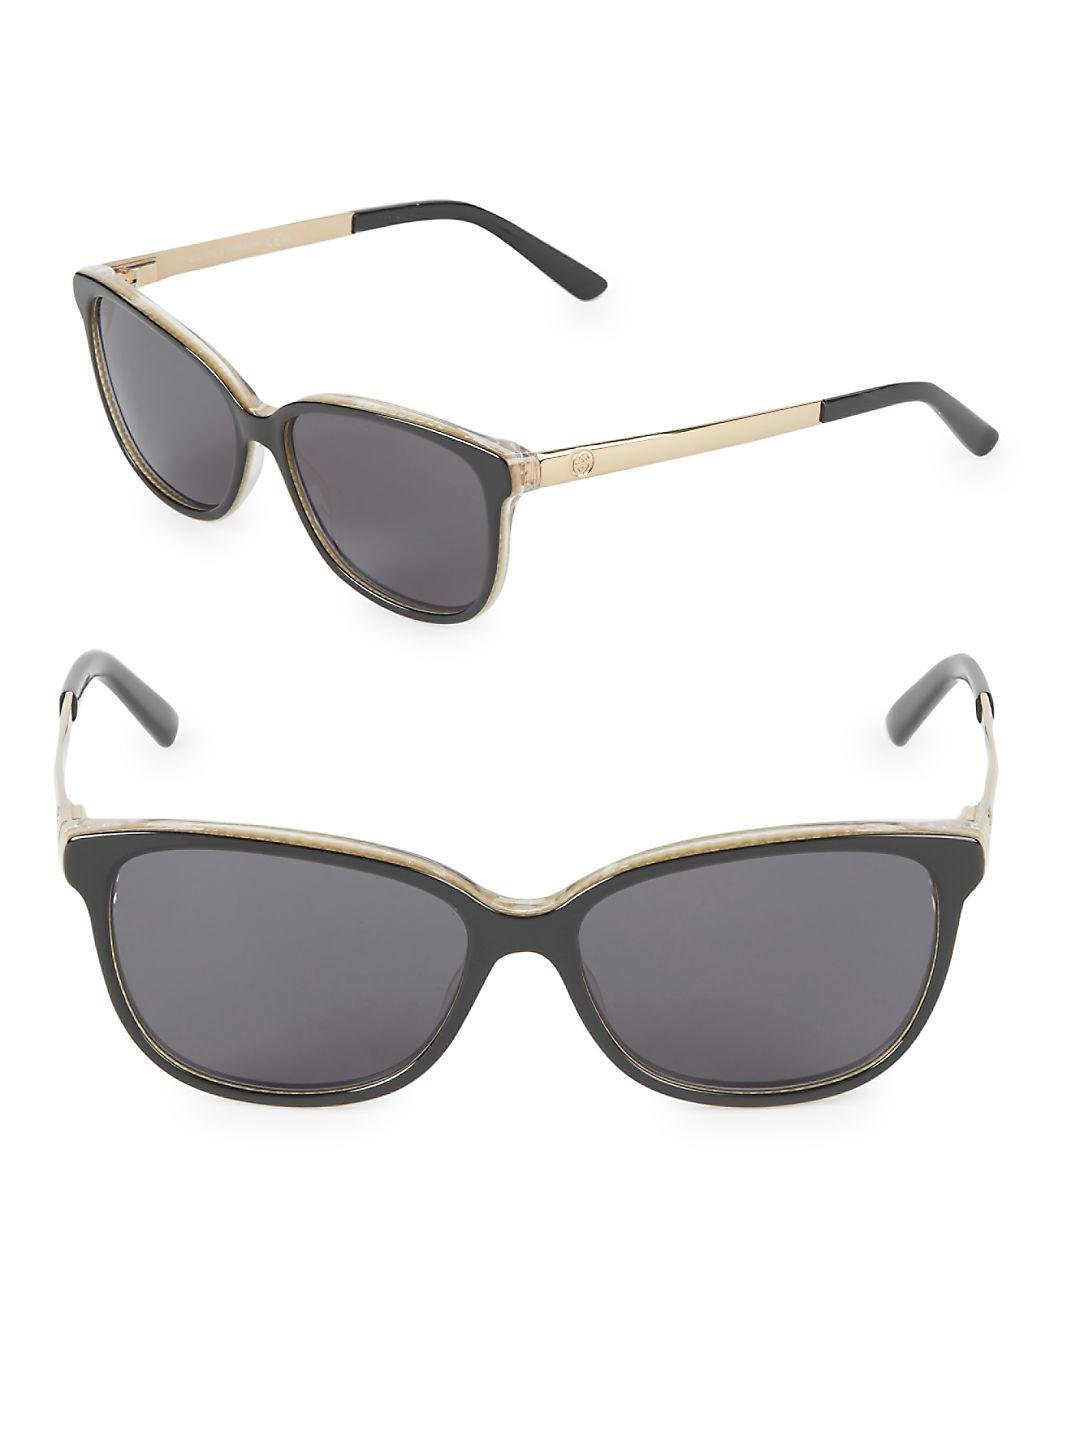 068cac4d603c Gucci 54mm Butterfly Sunglasses in Gray - Lyst